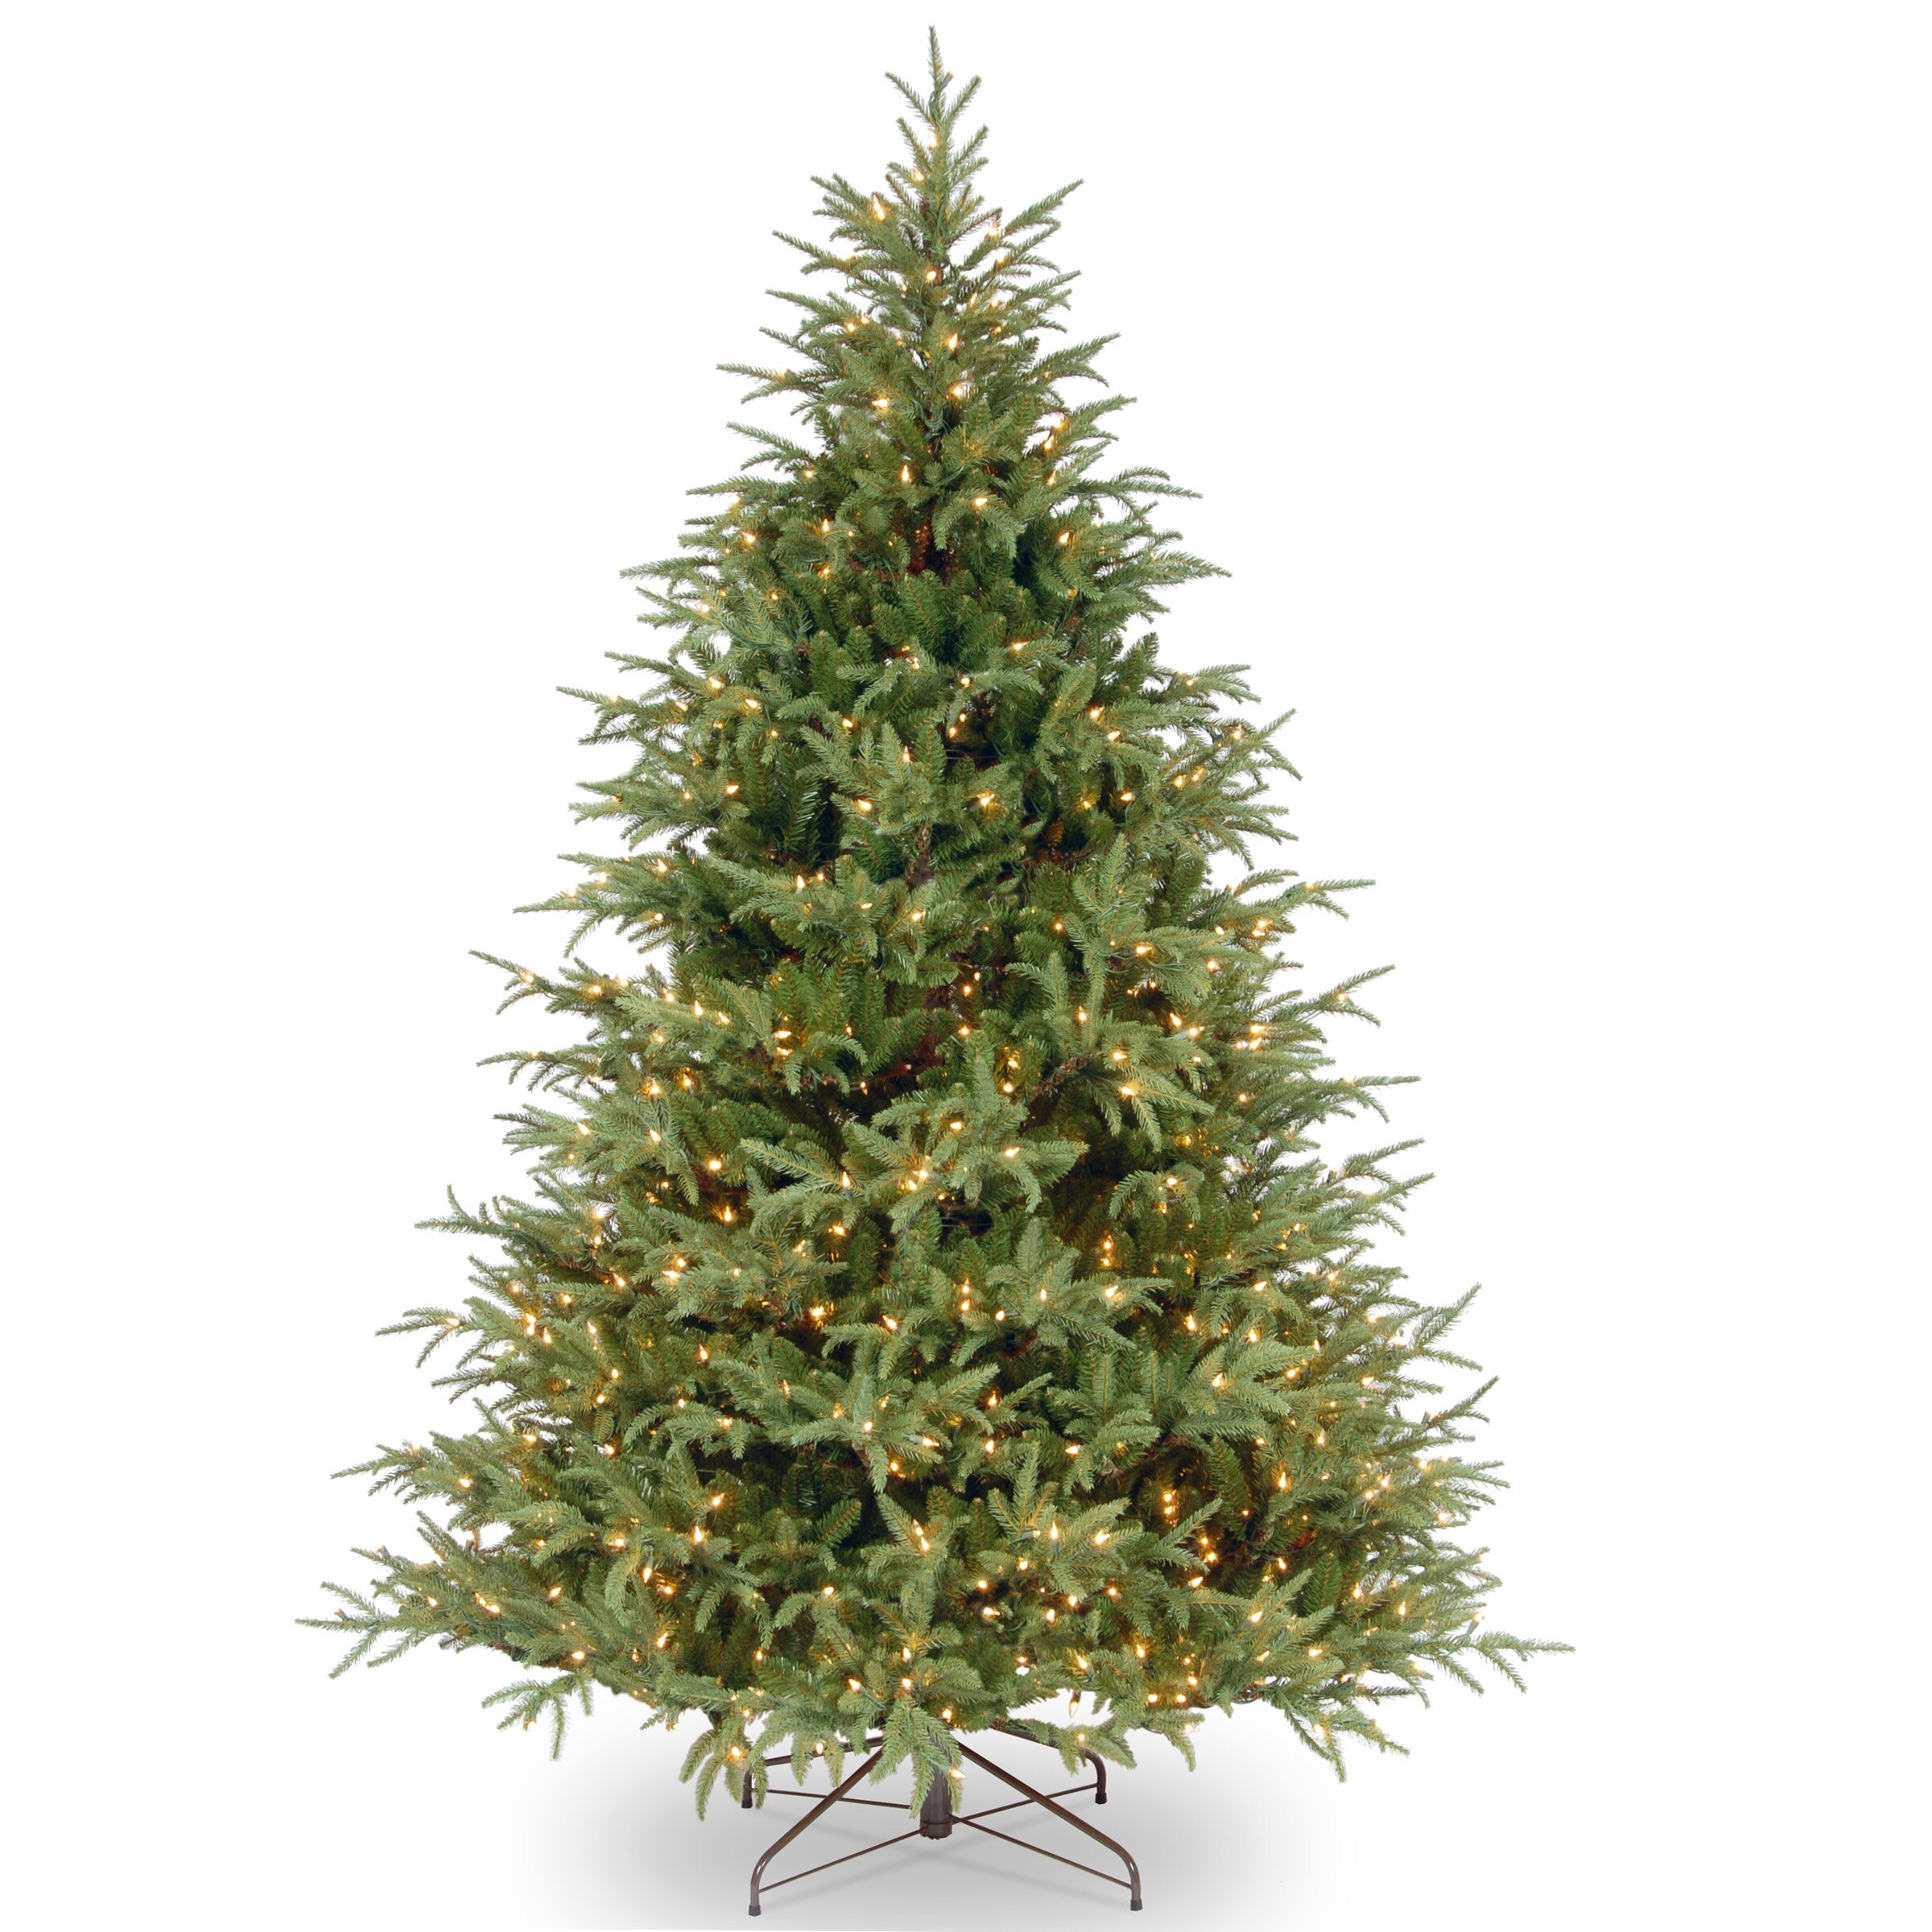 Frasier%b %%bgreen%bgrande%bartificial%bchristmas%btree%bwith%b%bpre Lit%bclear%blights%bwith%bstand